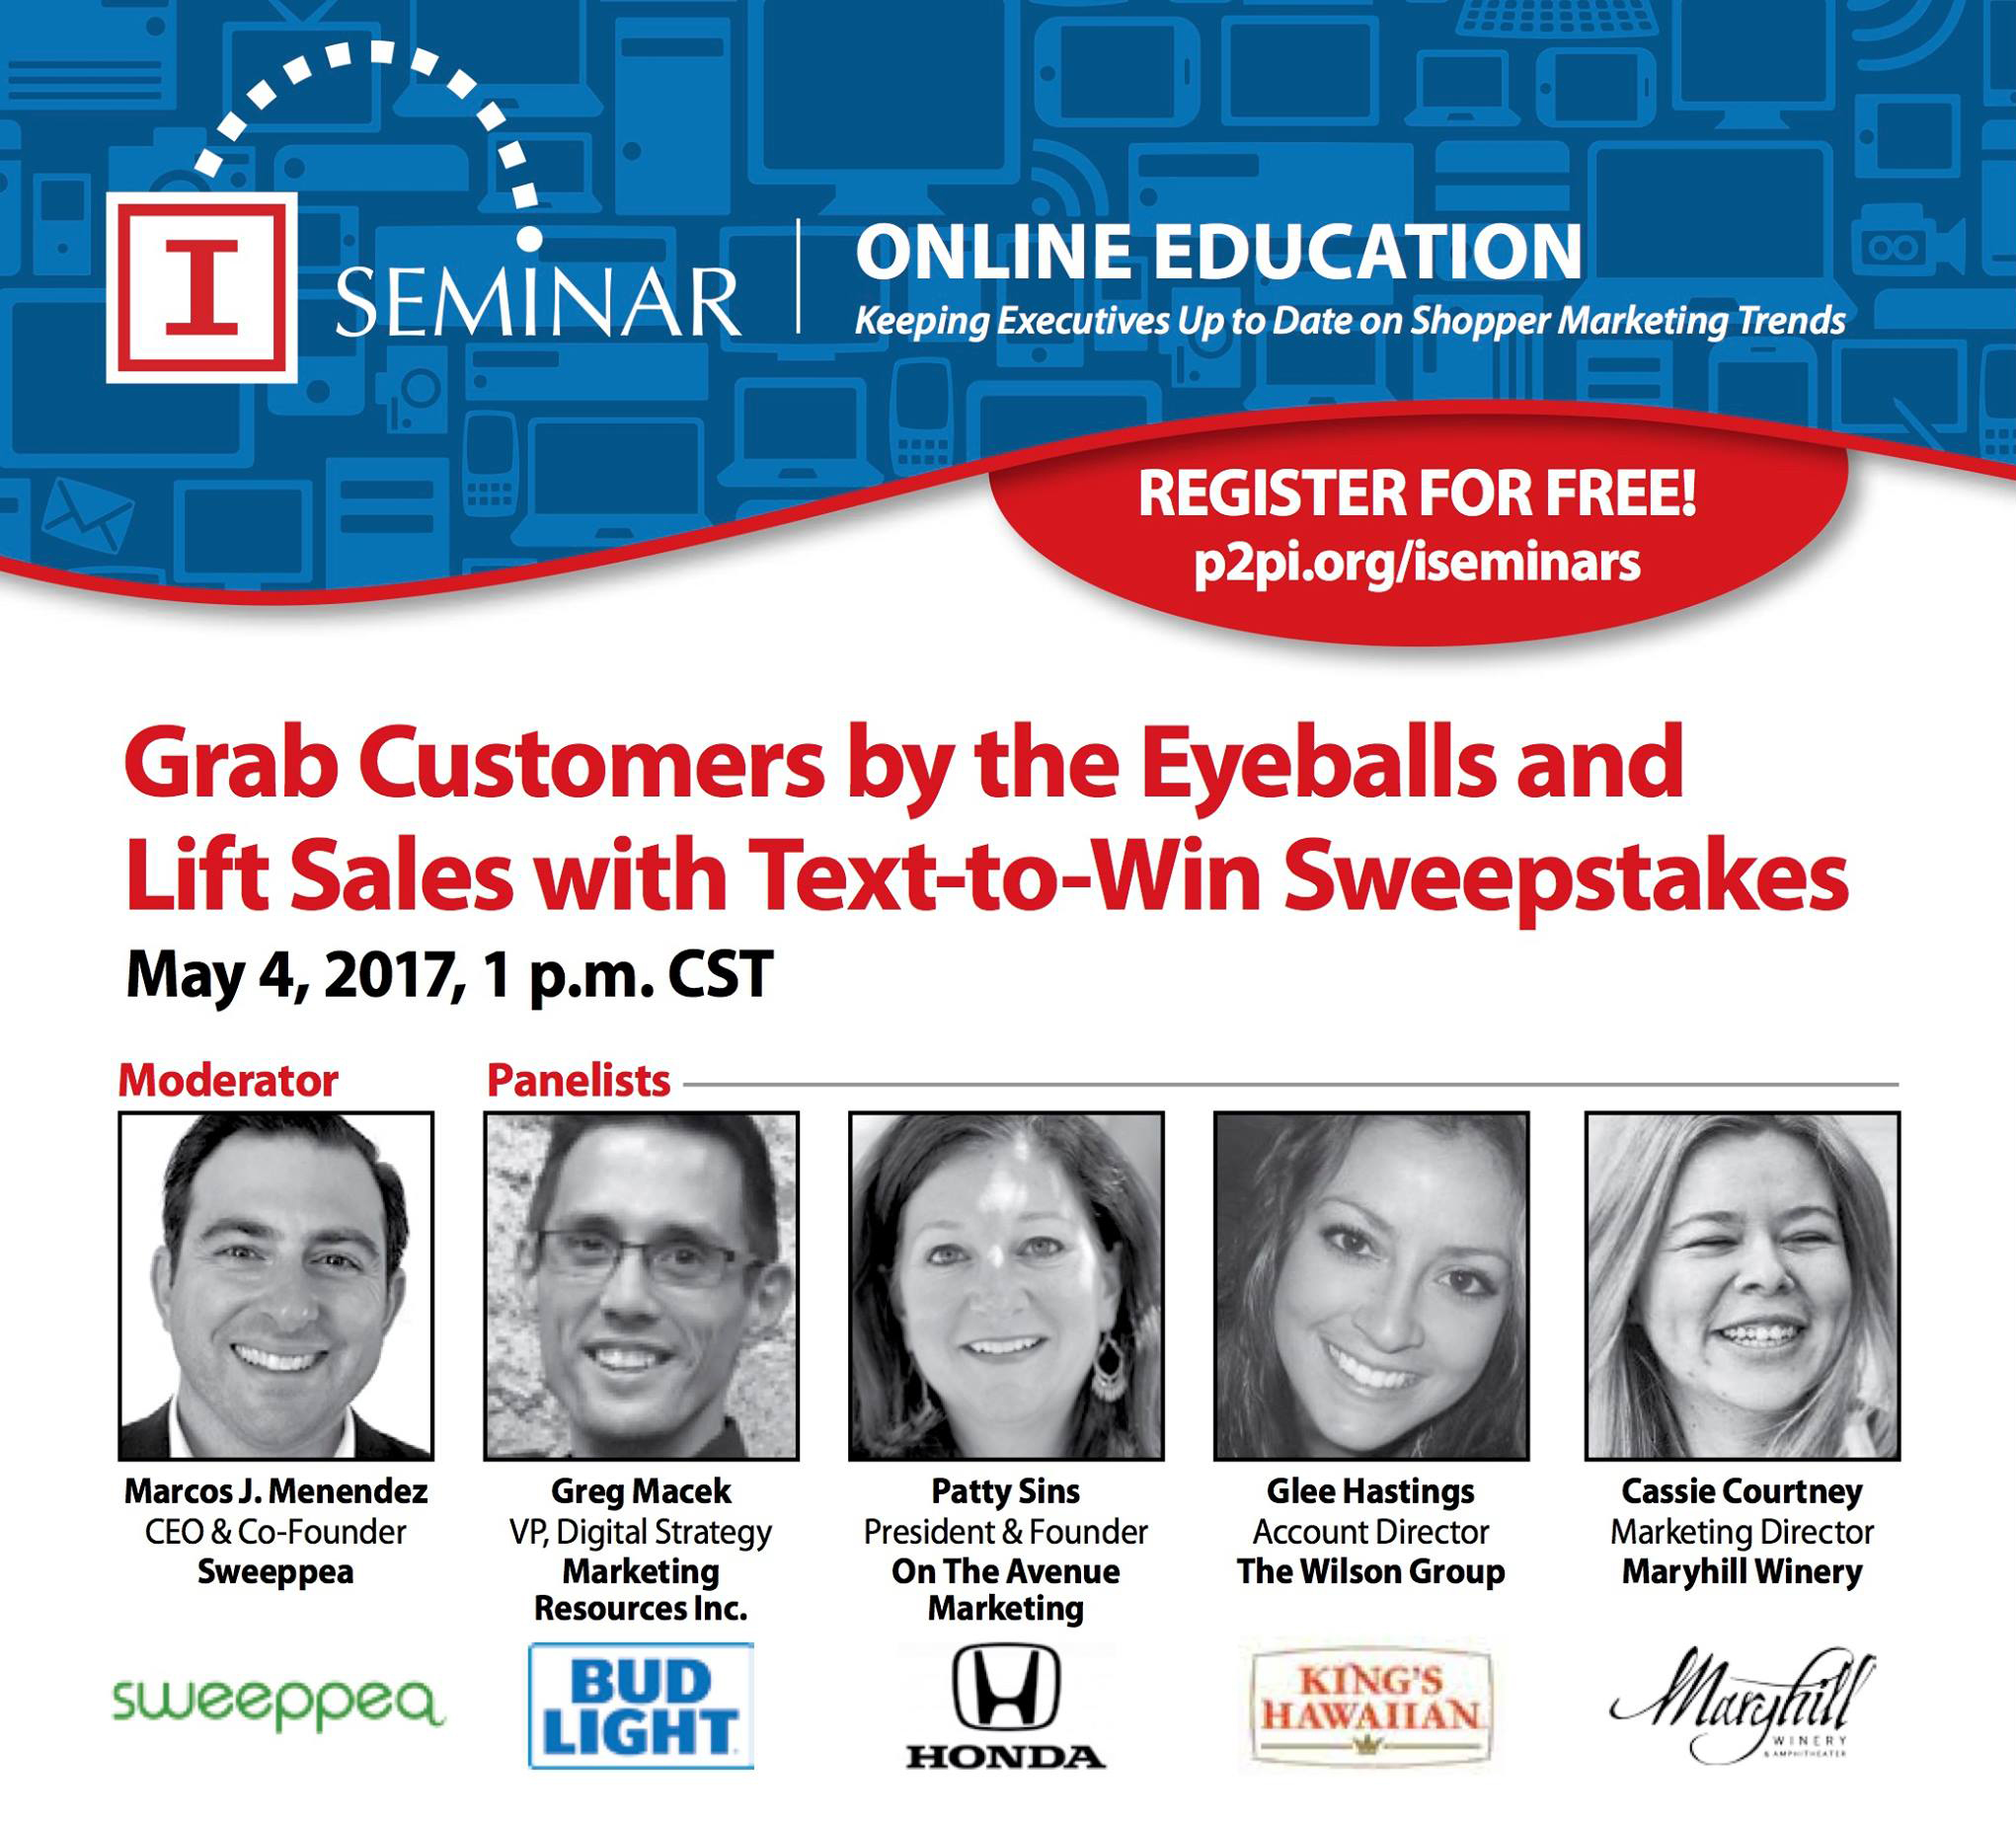 Learn how to grab more customers by the eyeballs with a mobile sweepstakes!